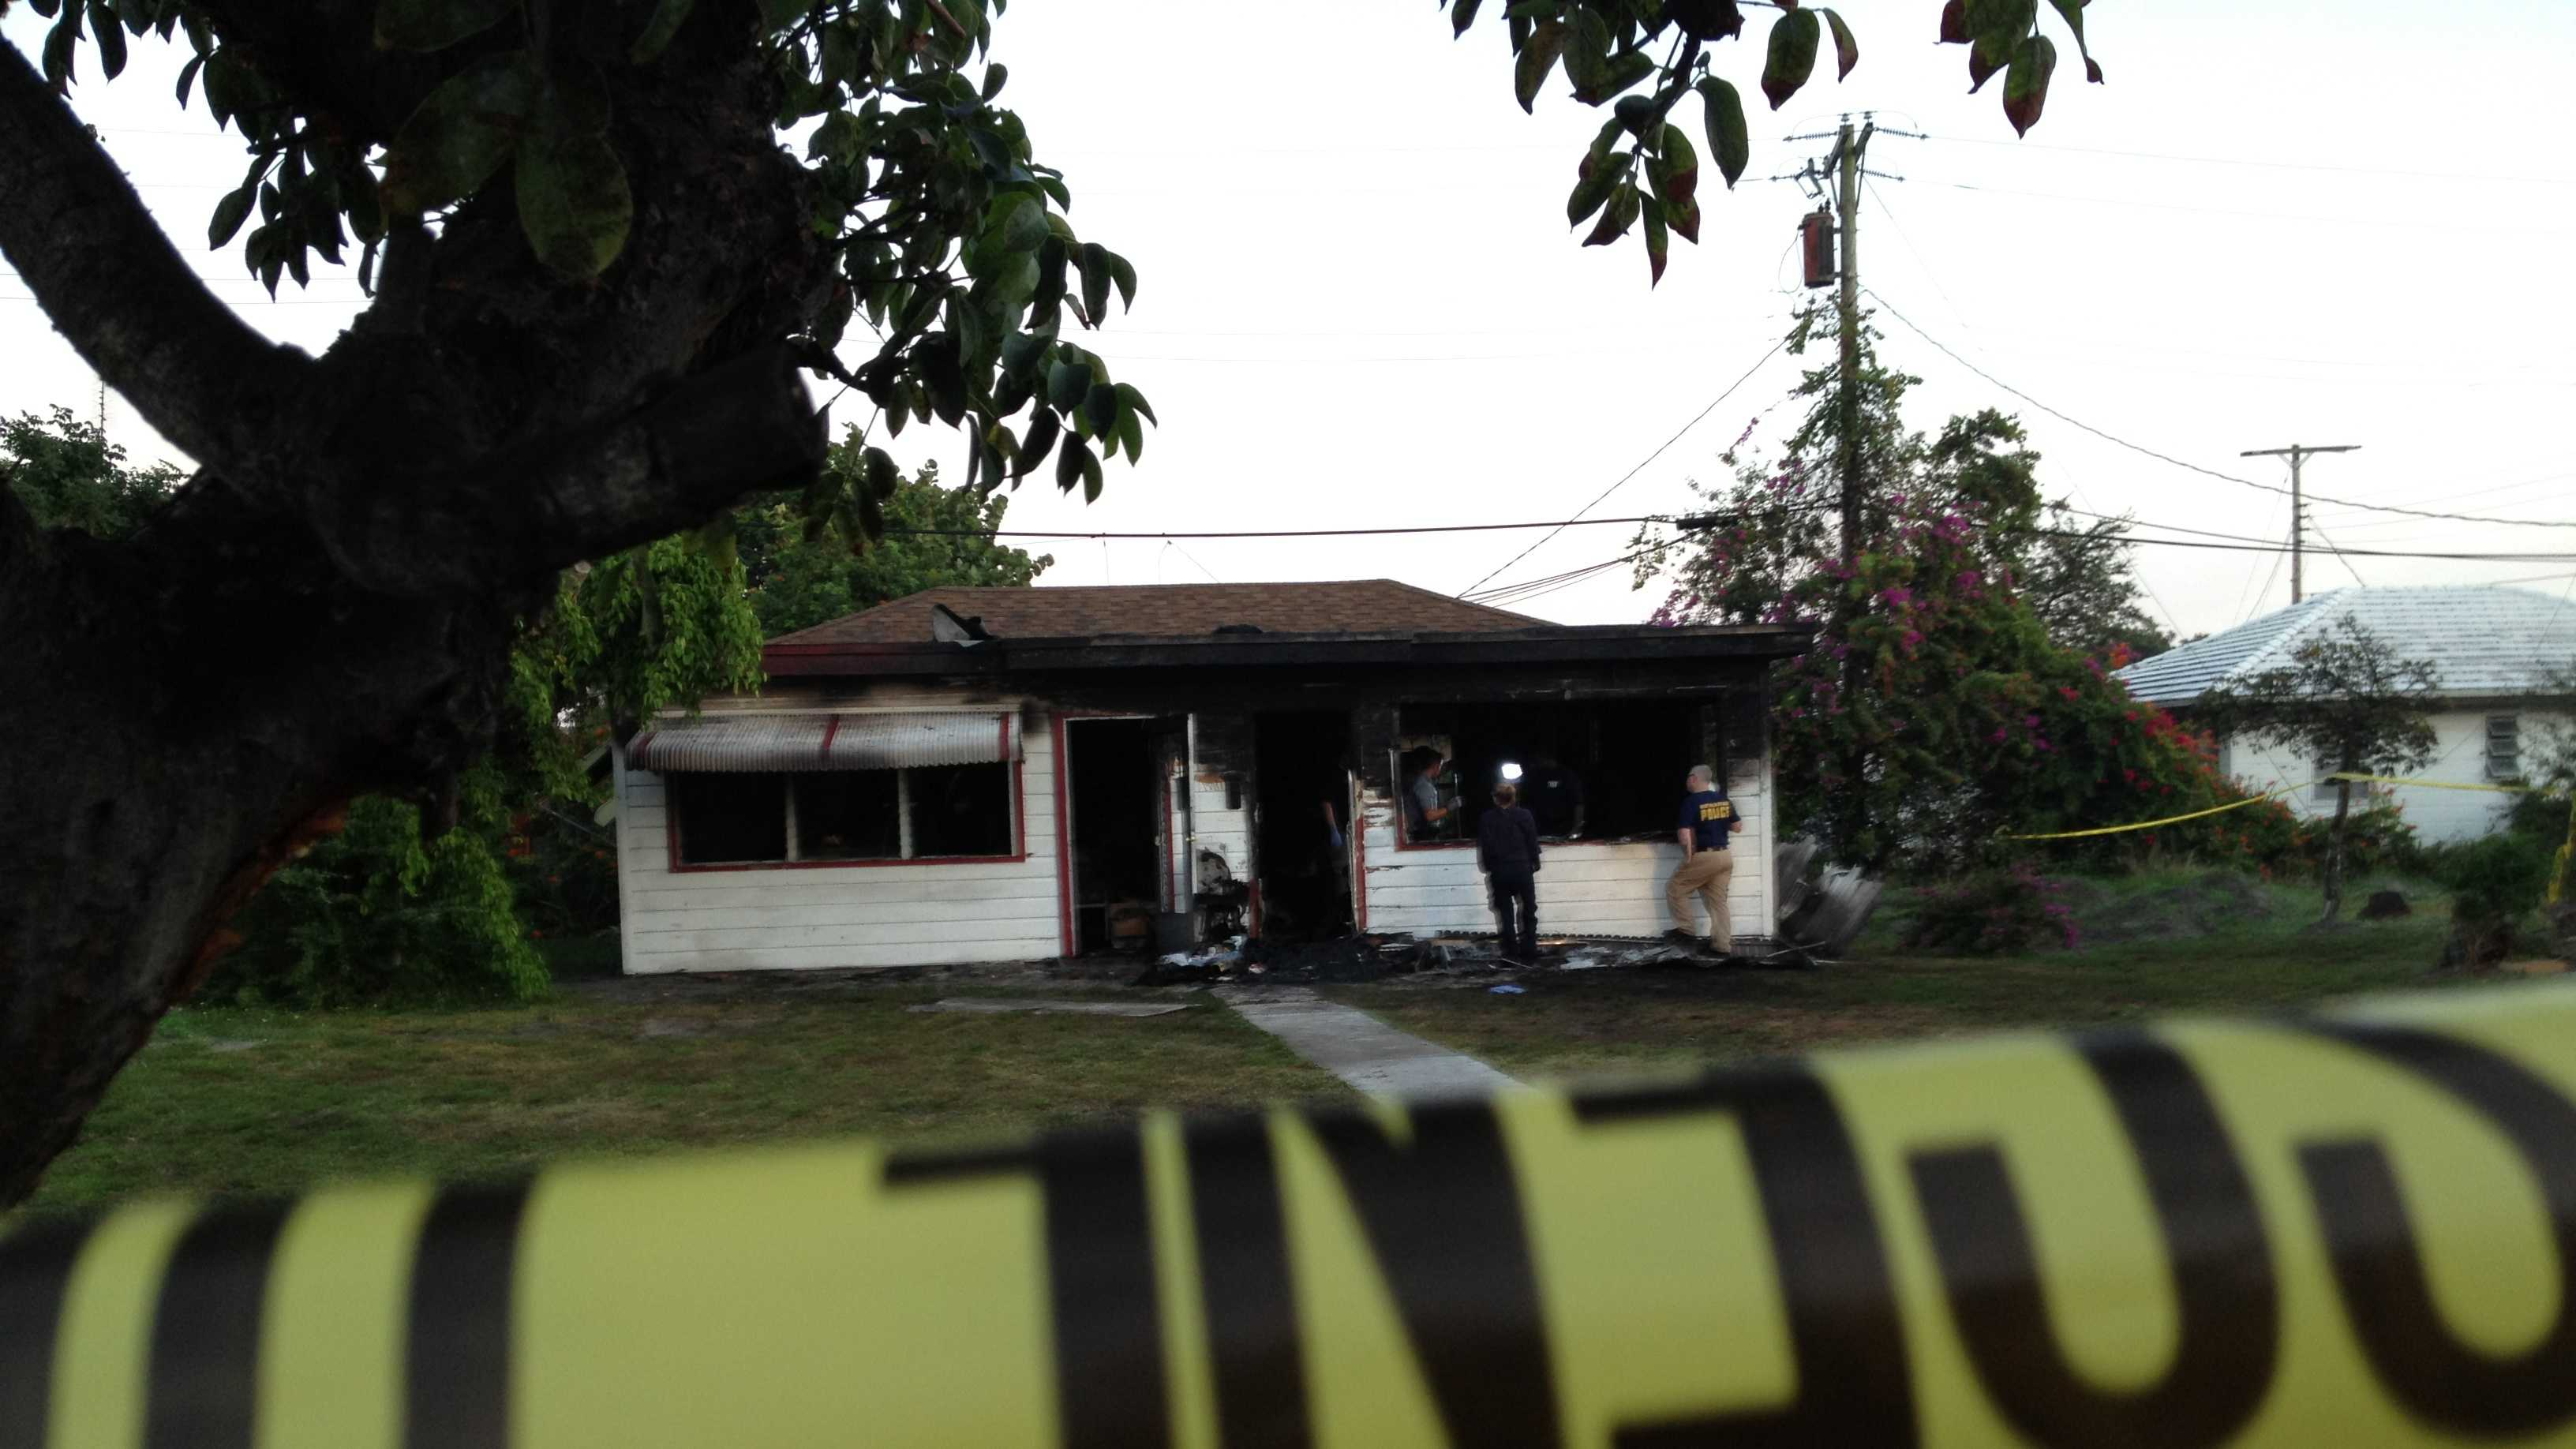 A man's body was found inside this home after a fire.